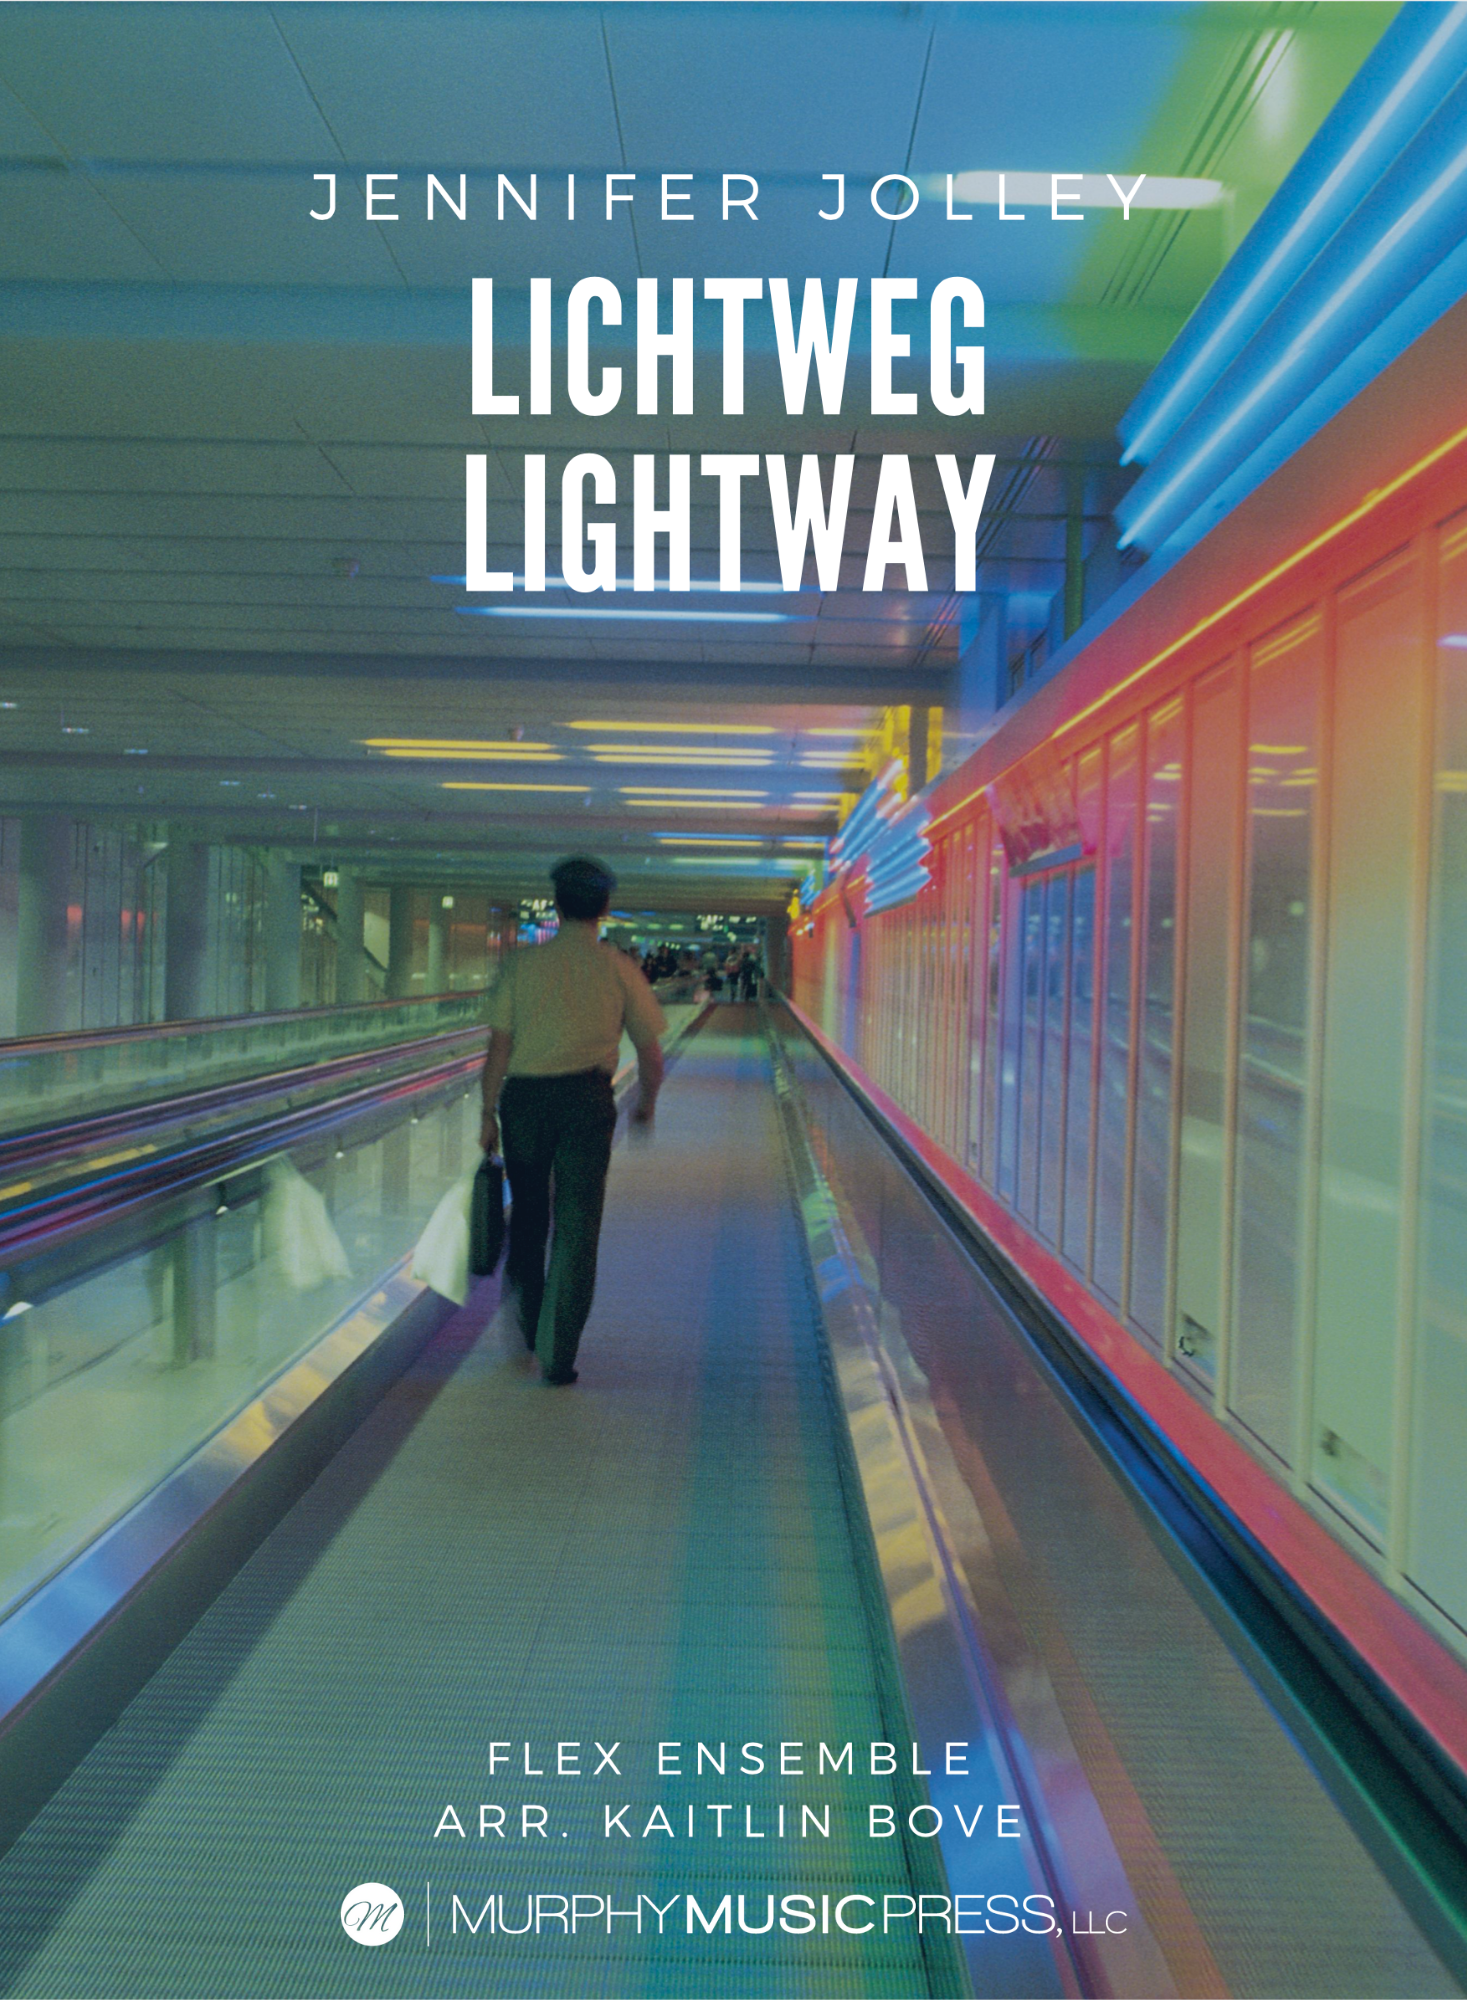 Lichtweg/Lightway (Flex Version) by Jennifer Jolley, arr. Bove